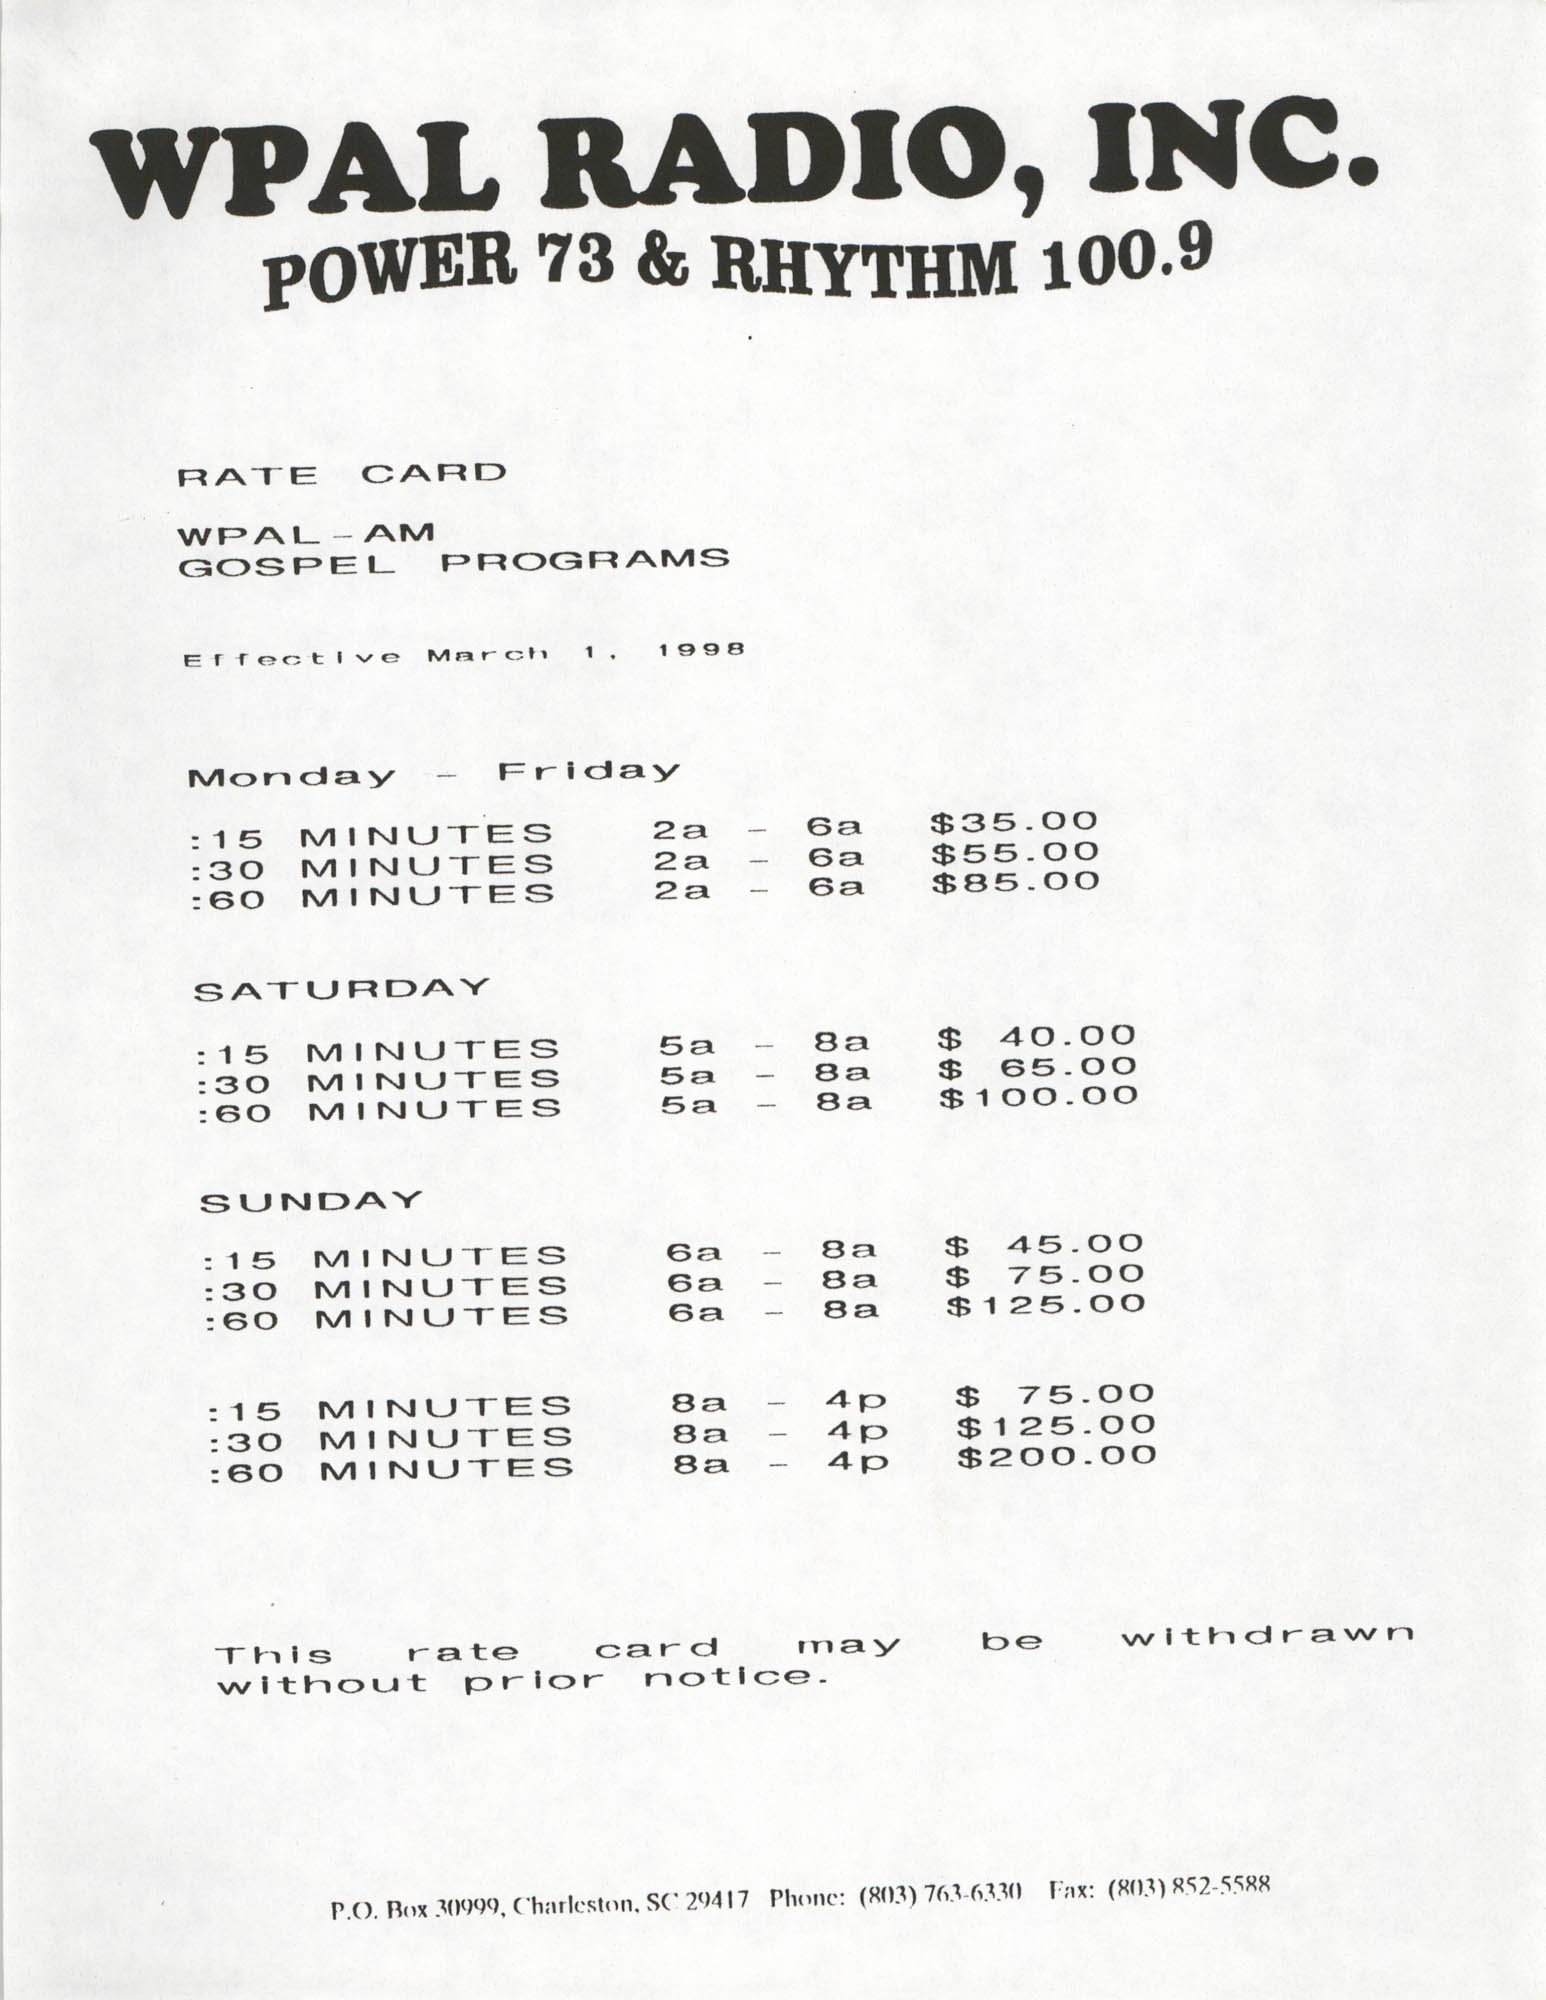 WPAL Radio, Inc., Rate Card